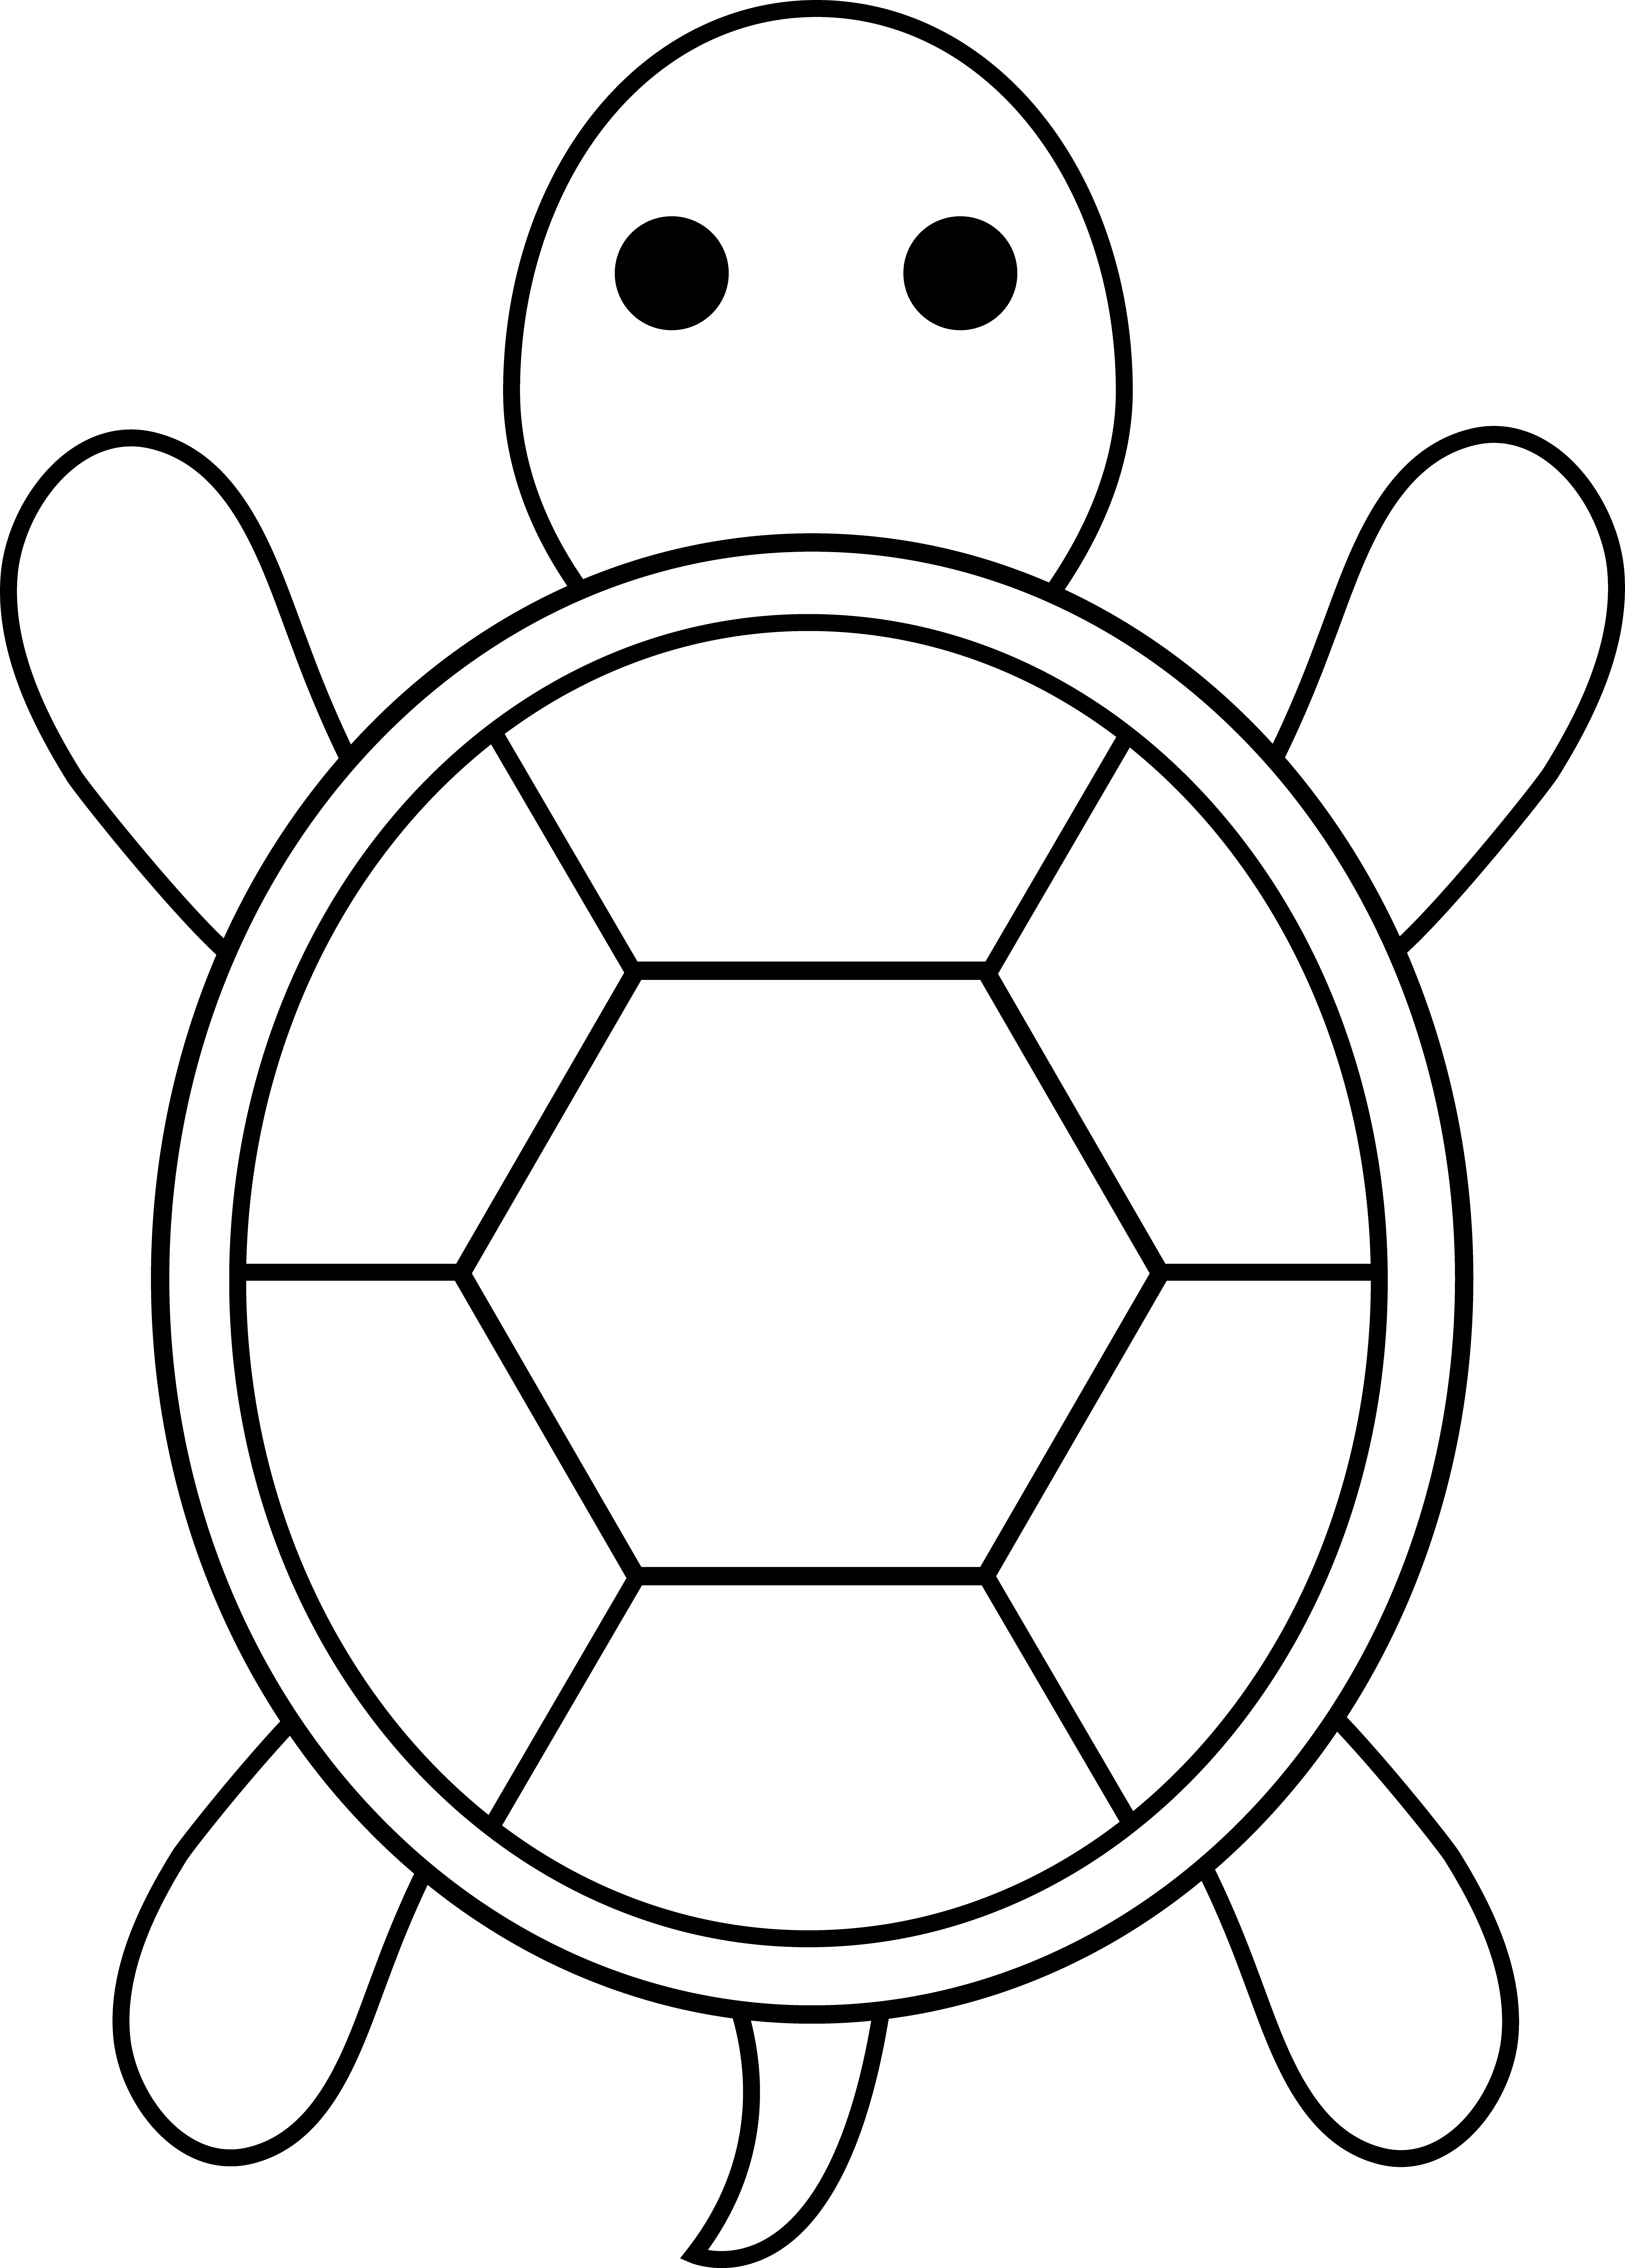 Turtle shell pattern clipart - ClipartFox